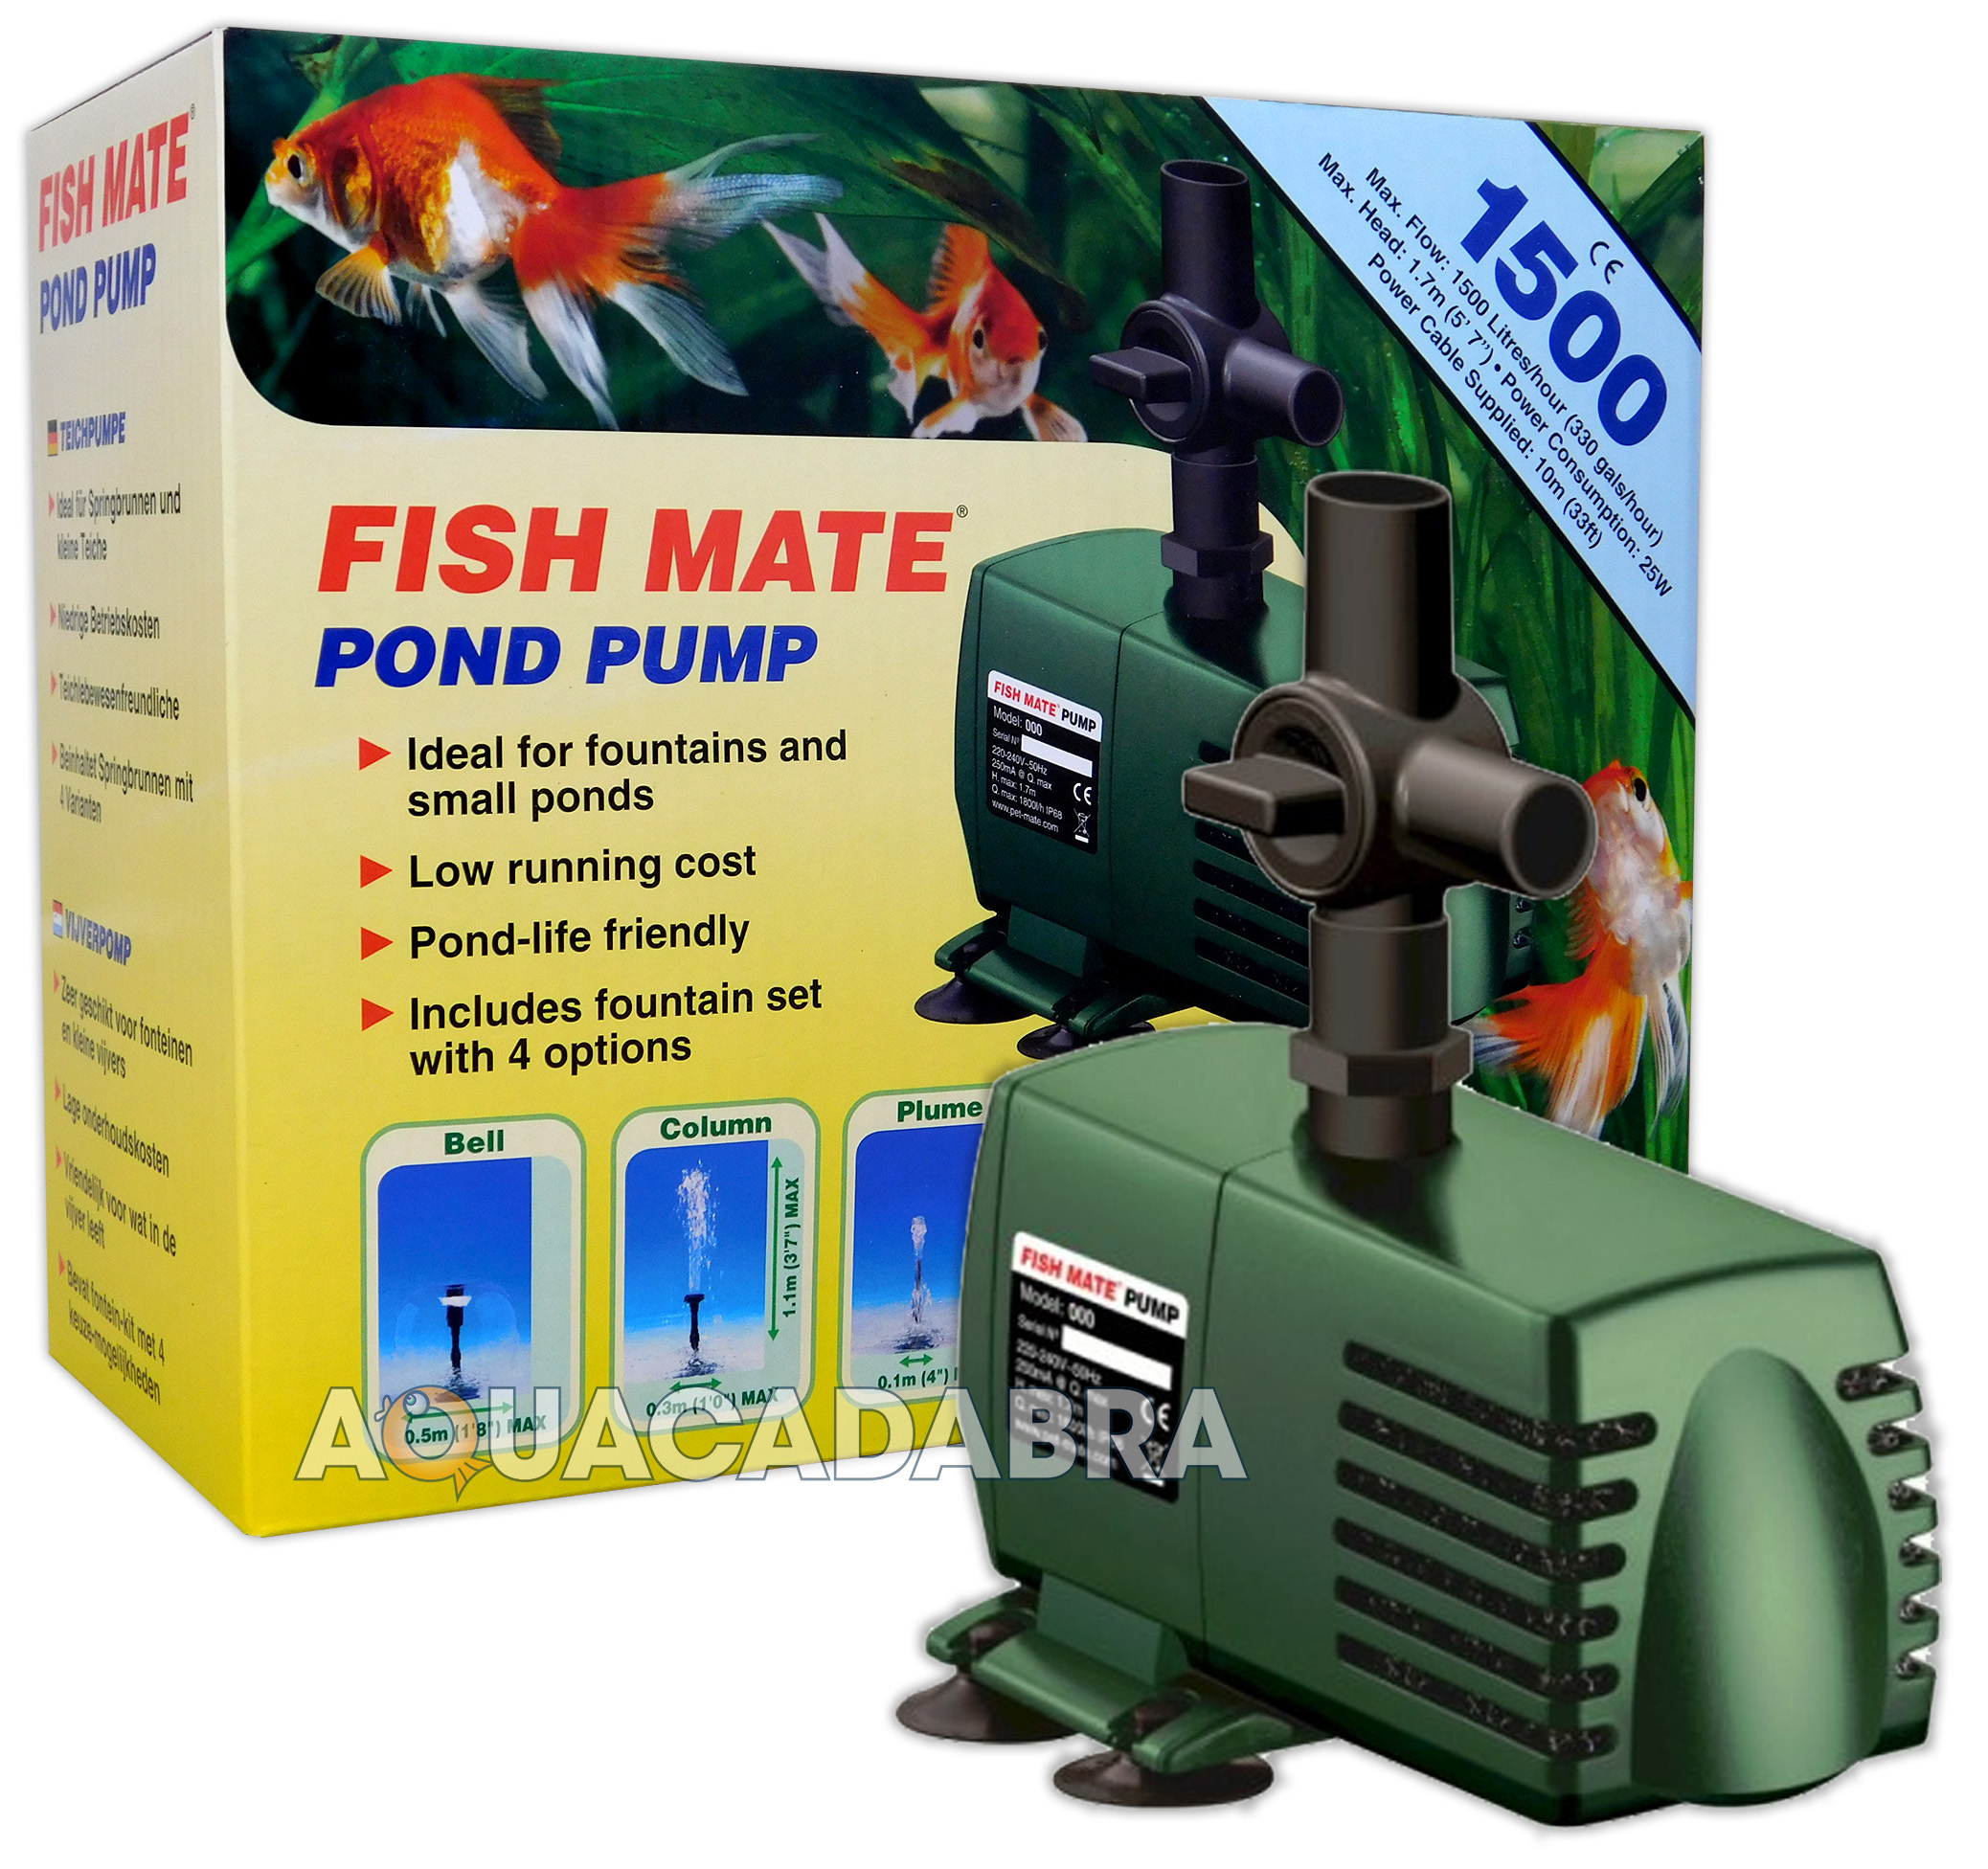 Fish mate 1500 fountain pump koi fish garden pond flow for Outdoor fish pond filters and pumps